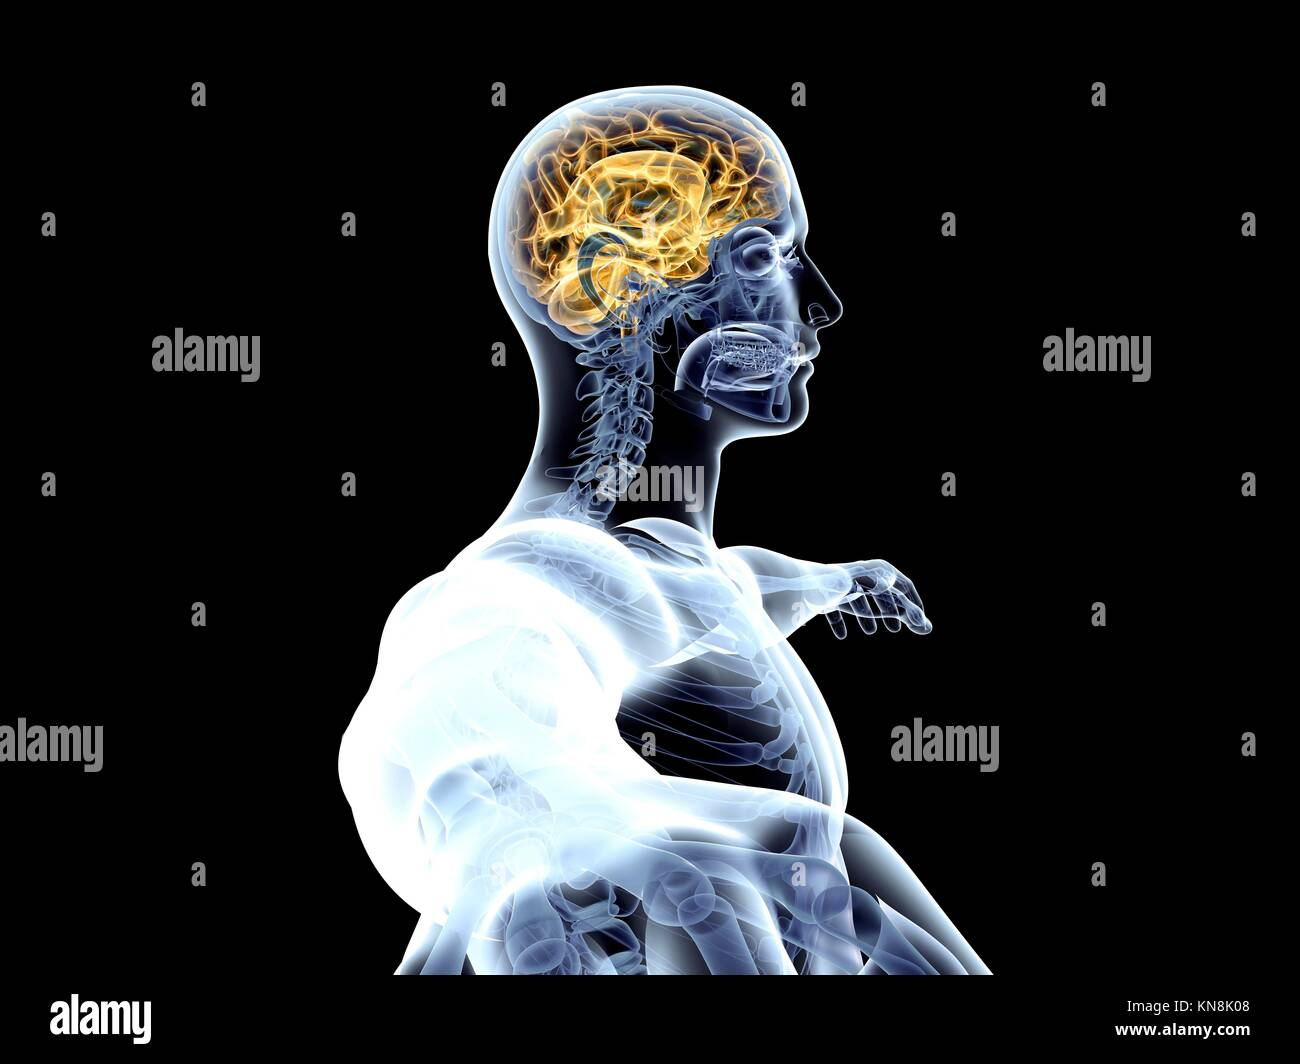 The human Brain. 3D rendered illustration. Isolated on black. - Stock Image